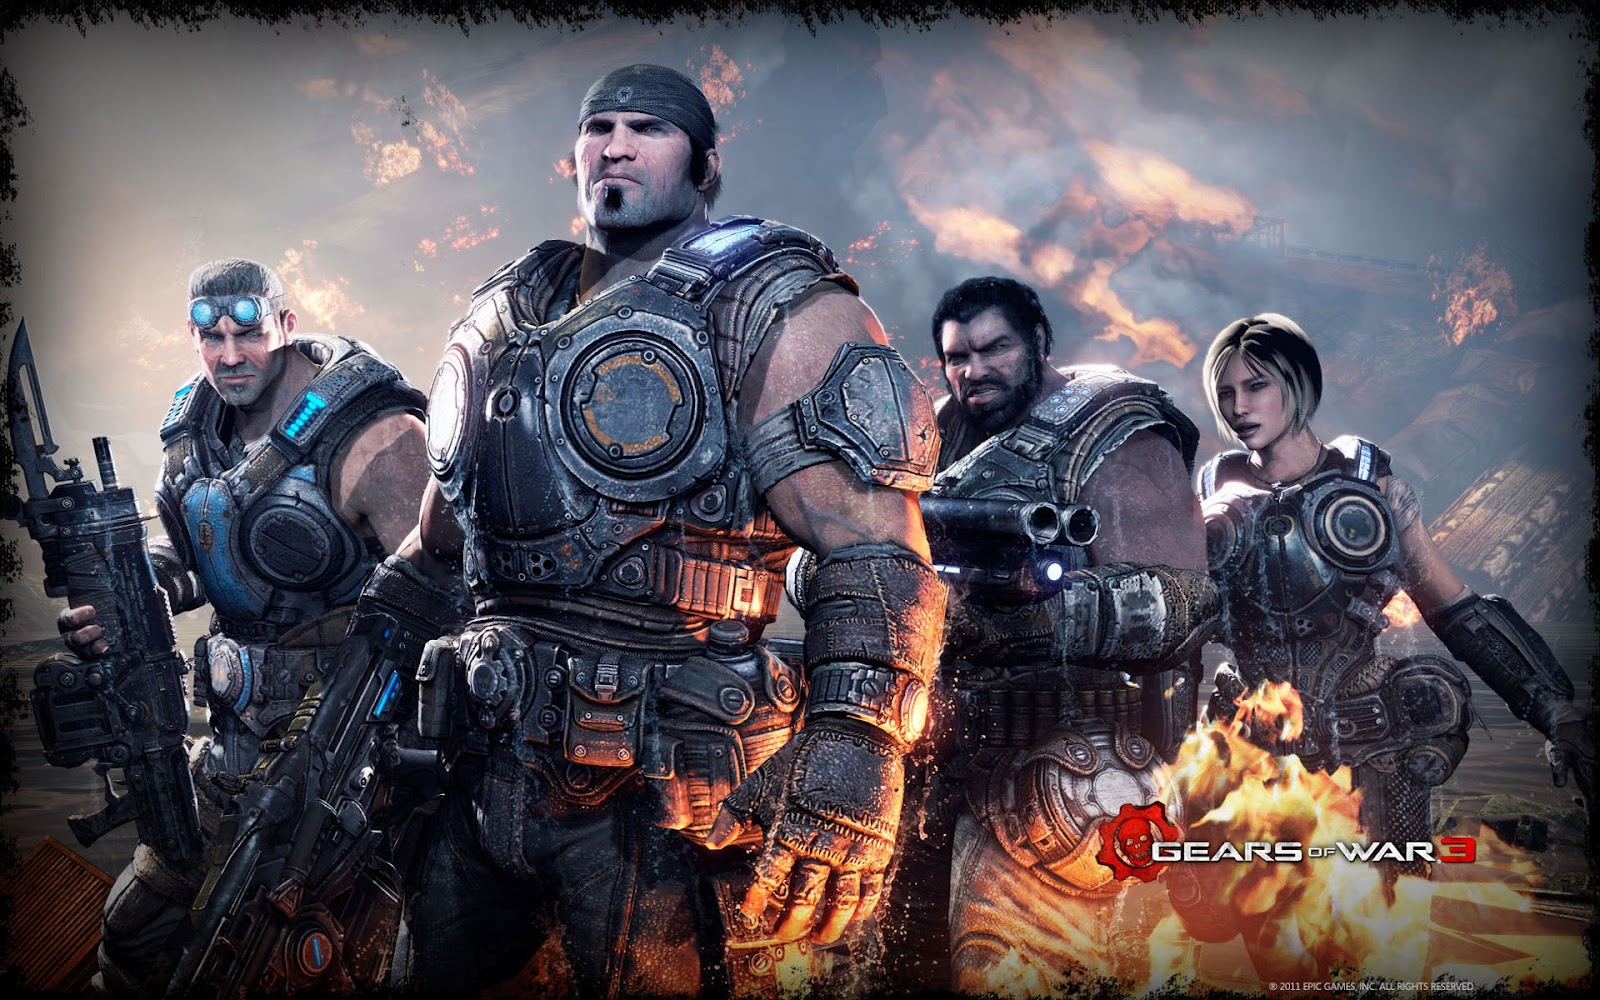 Gears Of War 3 Wallpapers: Wallpapers HD: Juego Gear Of War 1, 2, 3